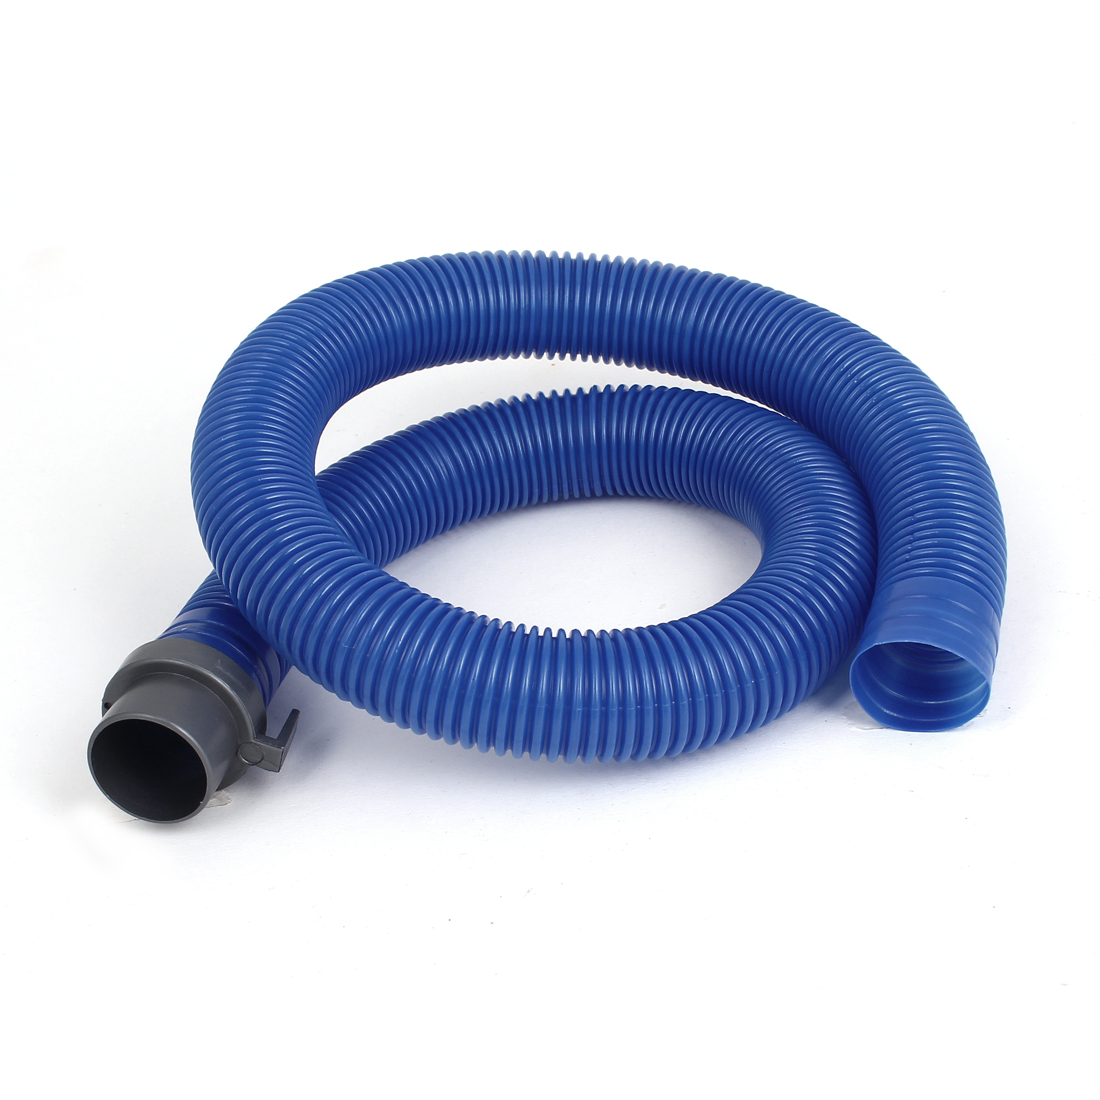 Washer Washing Machine Waste Water Drain Hose Pipe 3Ft Blue